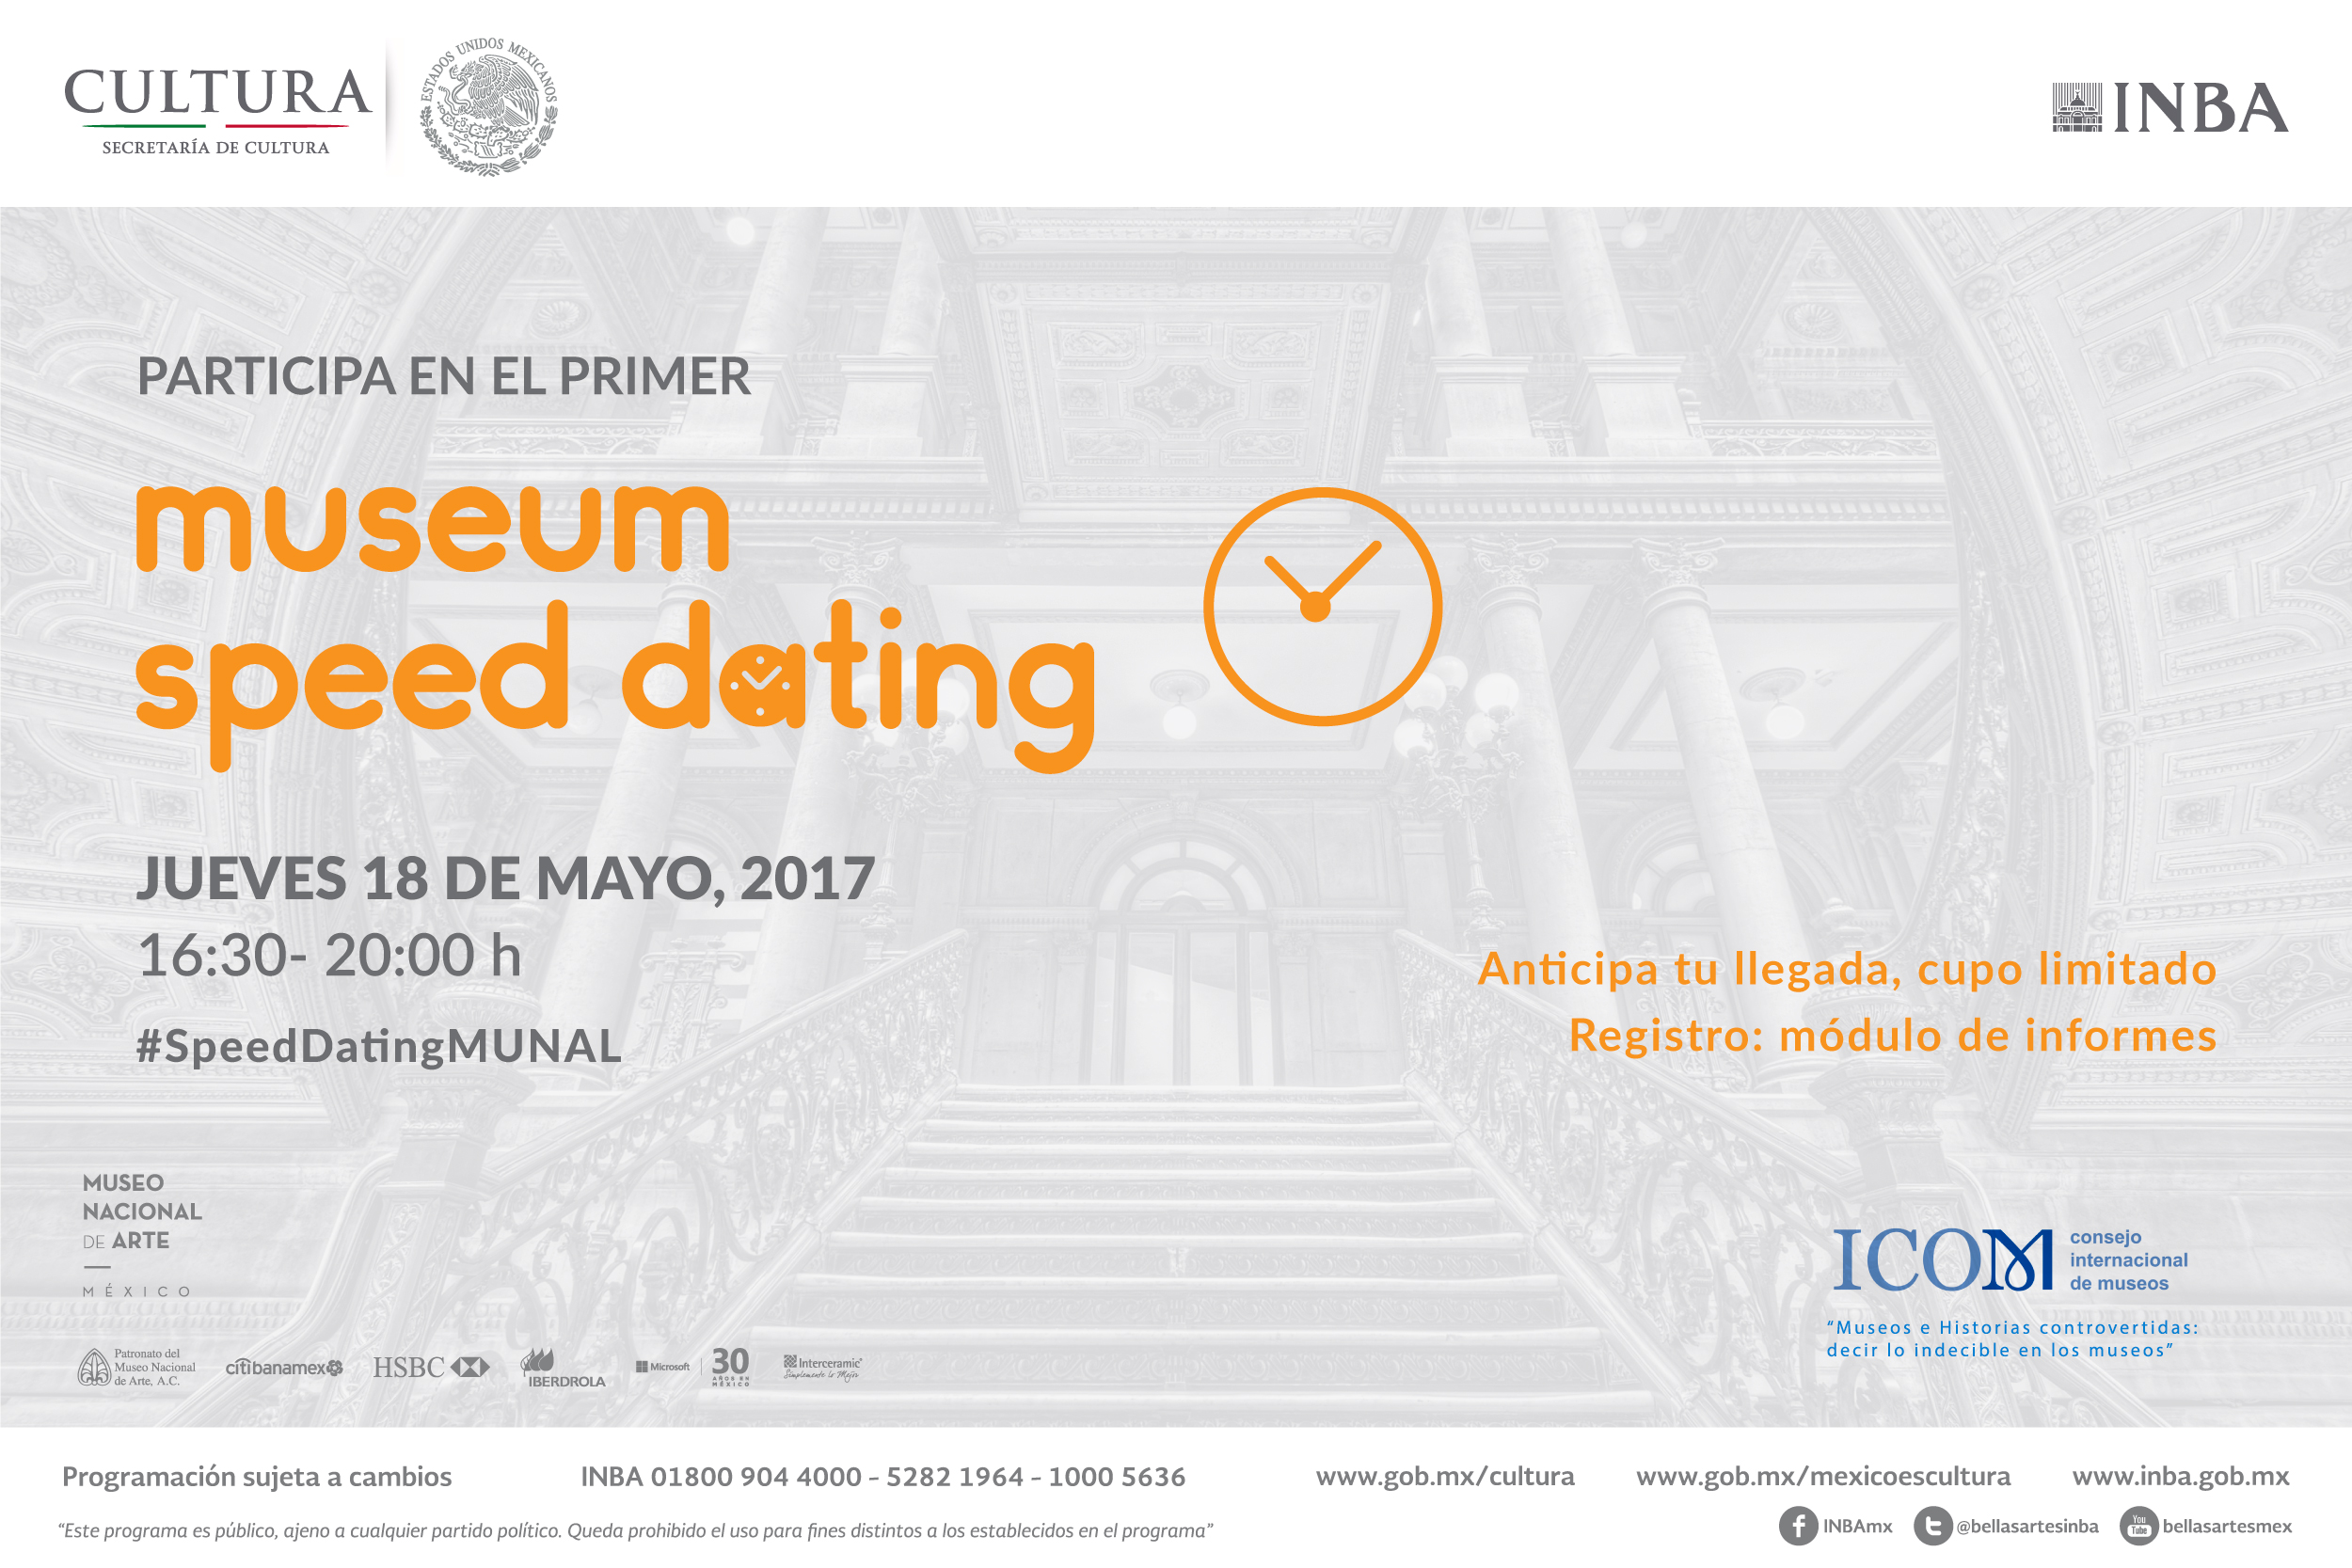 Speed dating artes